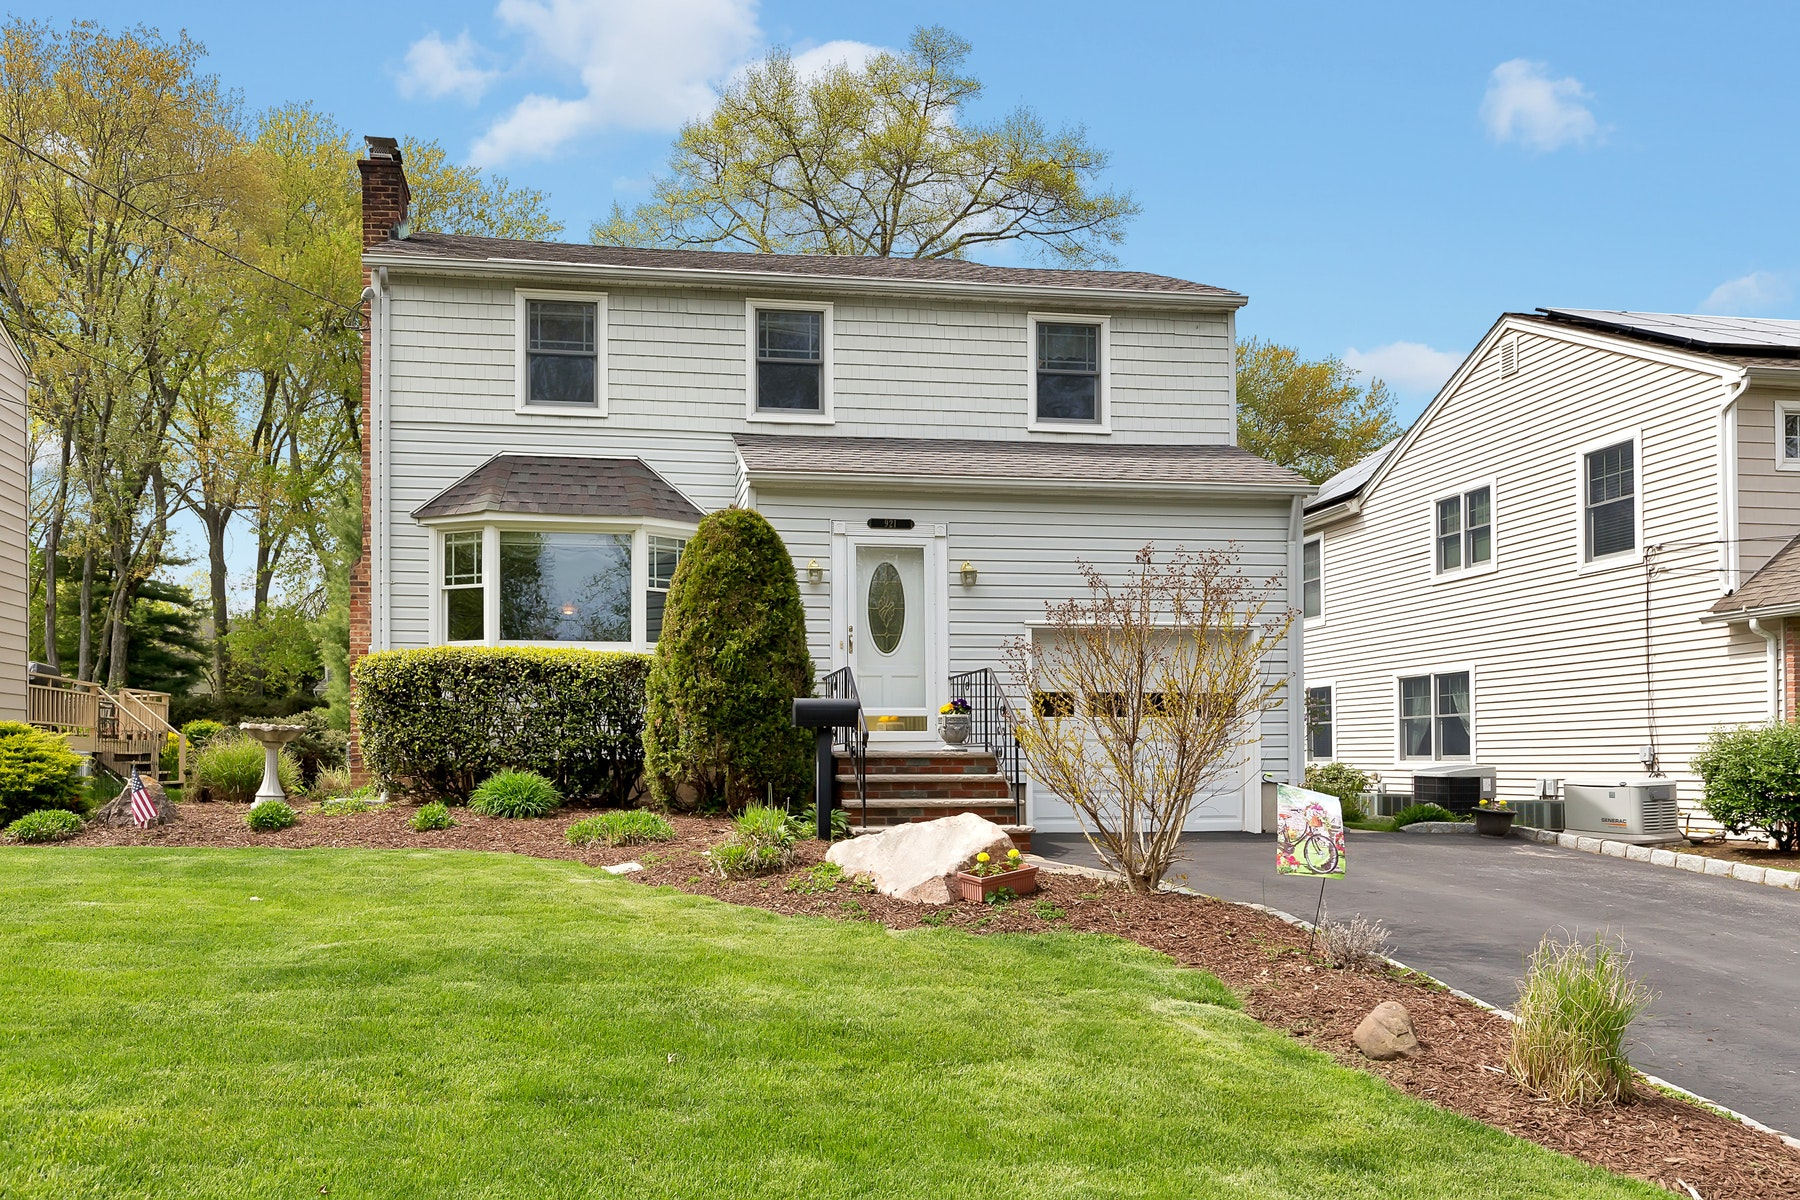 Single Family Homes for Sale at Open Concept Living 921 Coolidge St Westfield, New Jersey 07090 United States